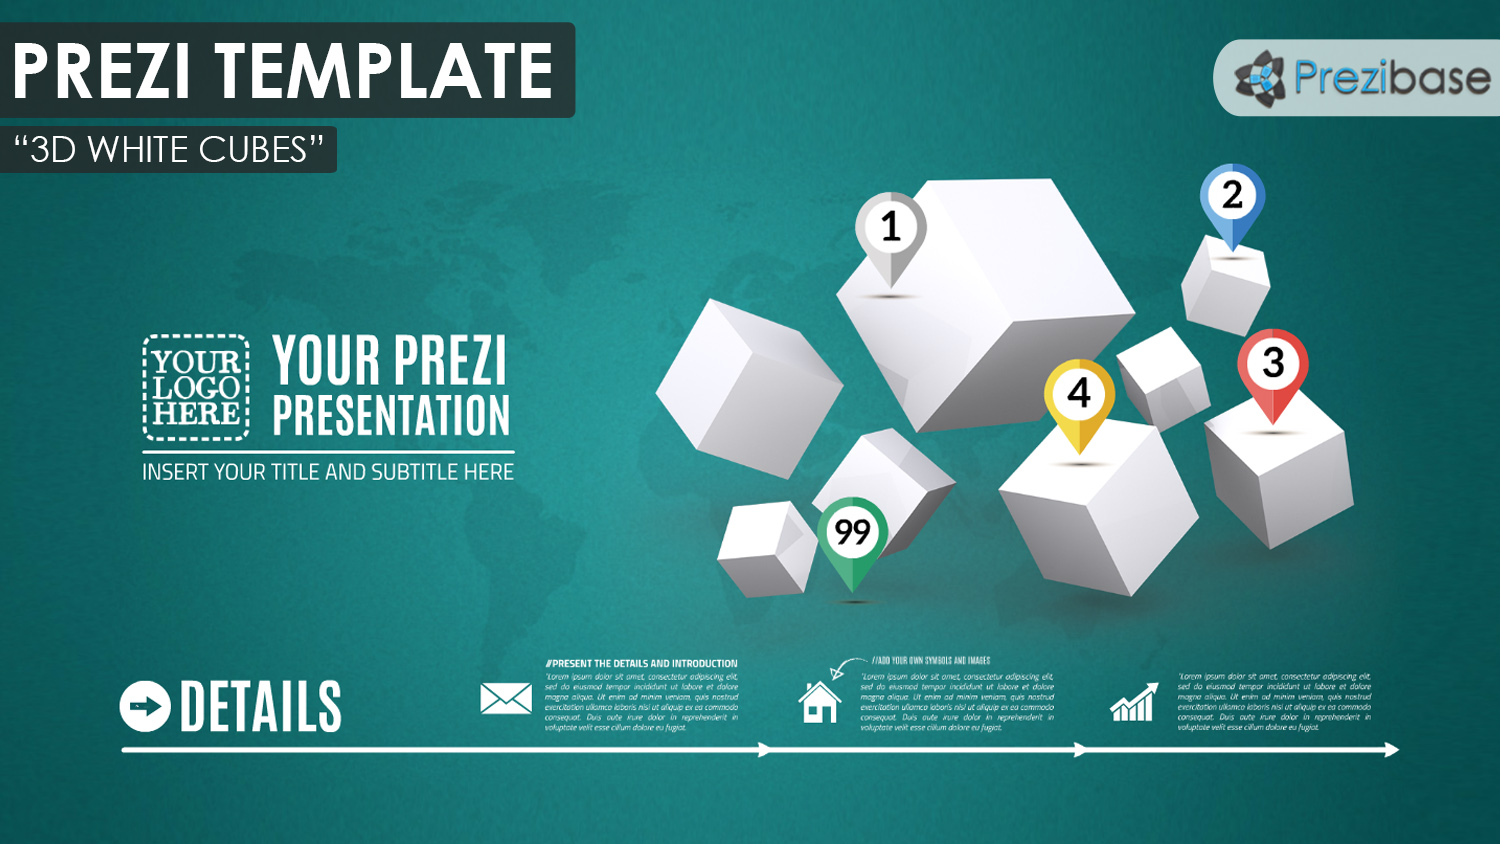 Infographic diagram prezi templates prezibase 3d white cubes squares infographic business prezi template friedricerecipe